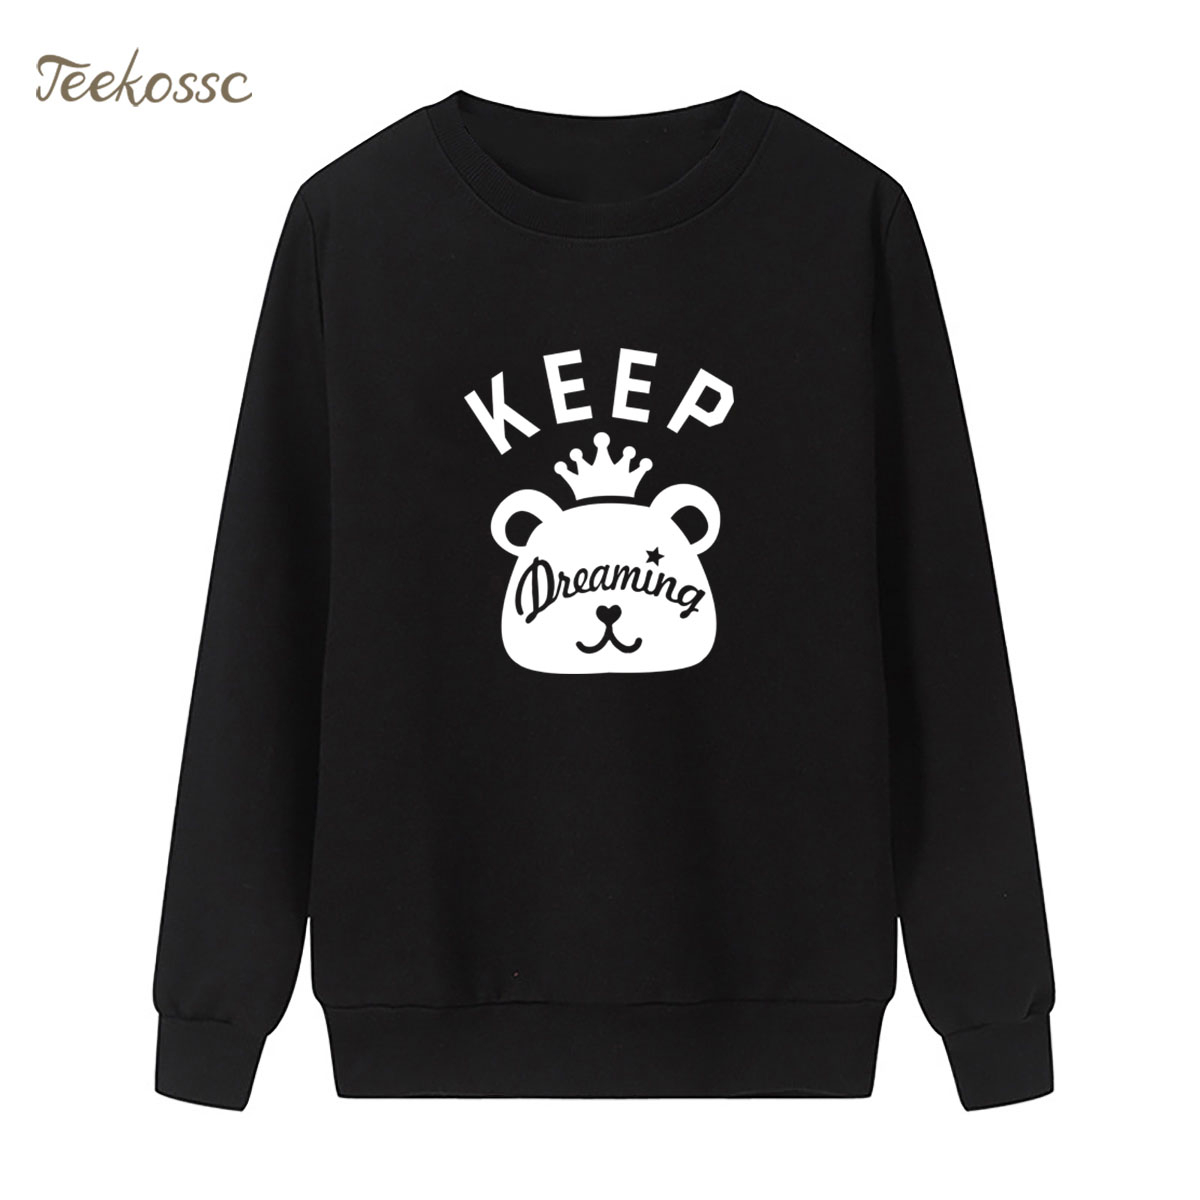 Bear Keep Dreaming Sweatshirt Print Hoodie 2018 New Brand Winter Autumn Women Lasdies Pullover Fleece Streetwear Cute Sportswear